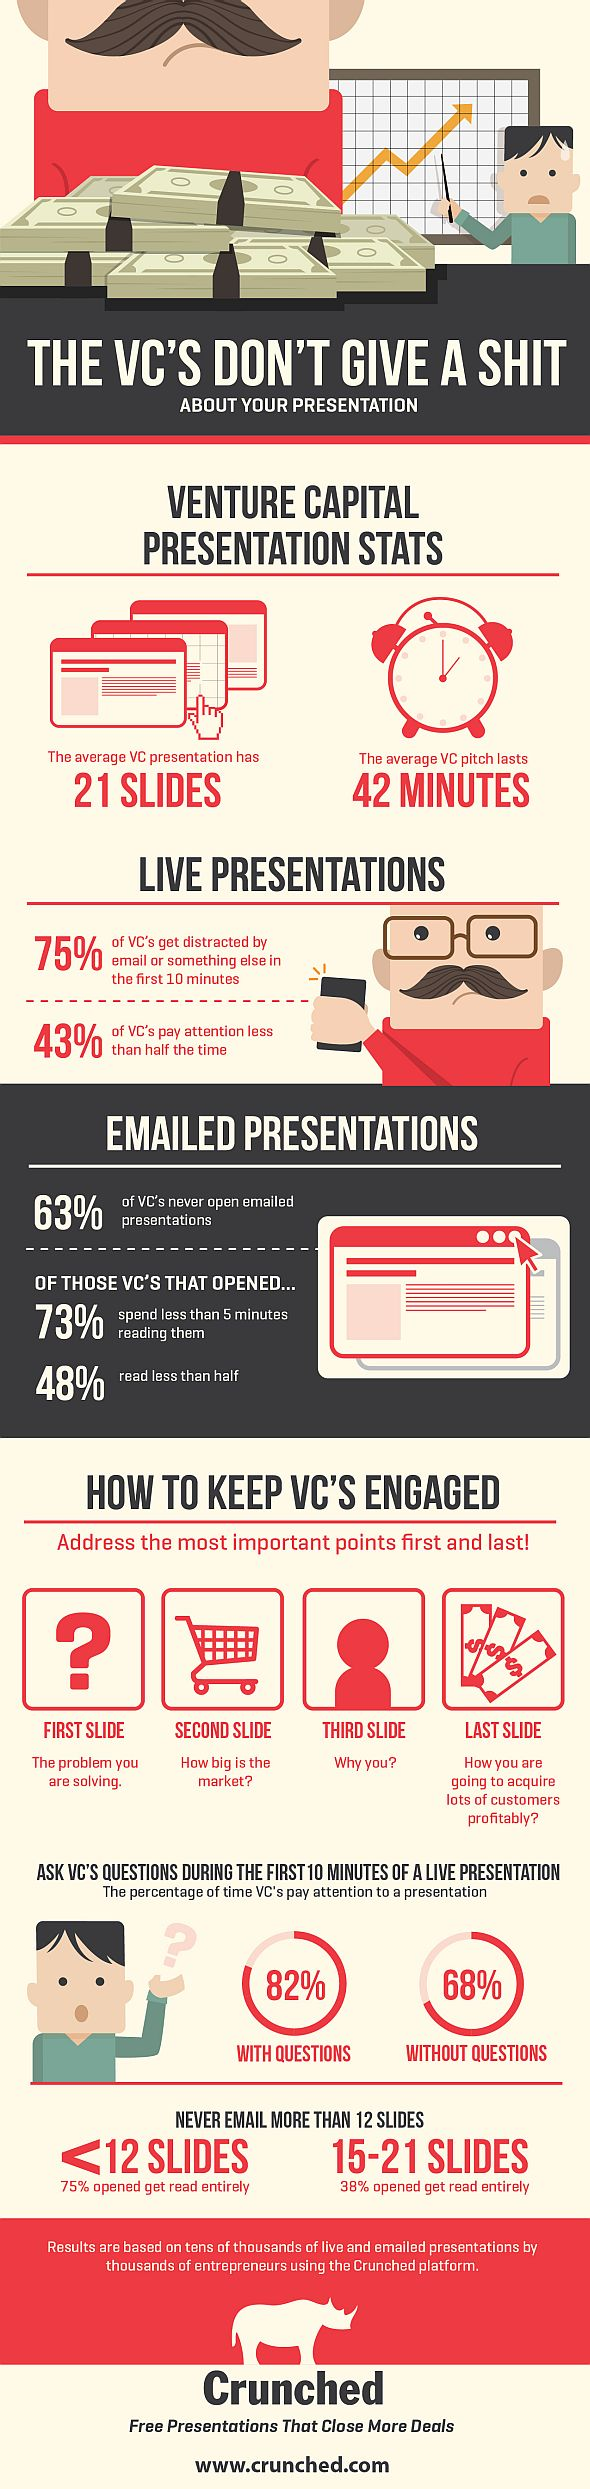 The VC's Don't Give A Shit About Your Presentation #infographic